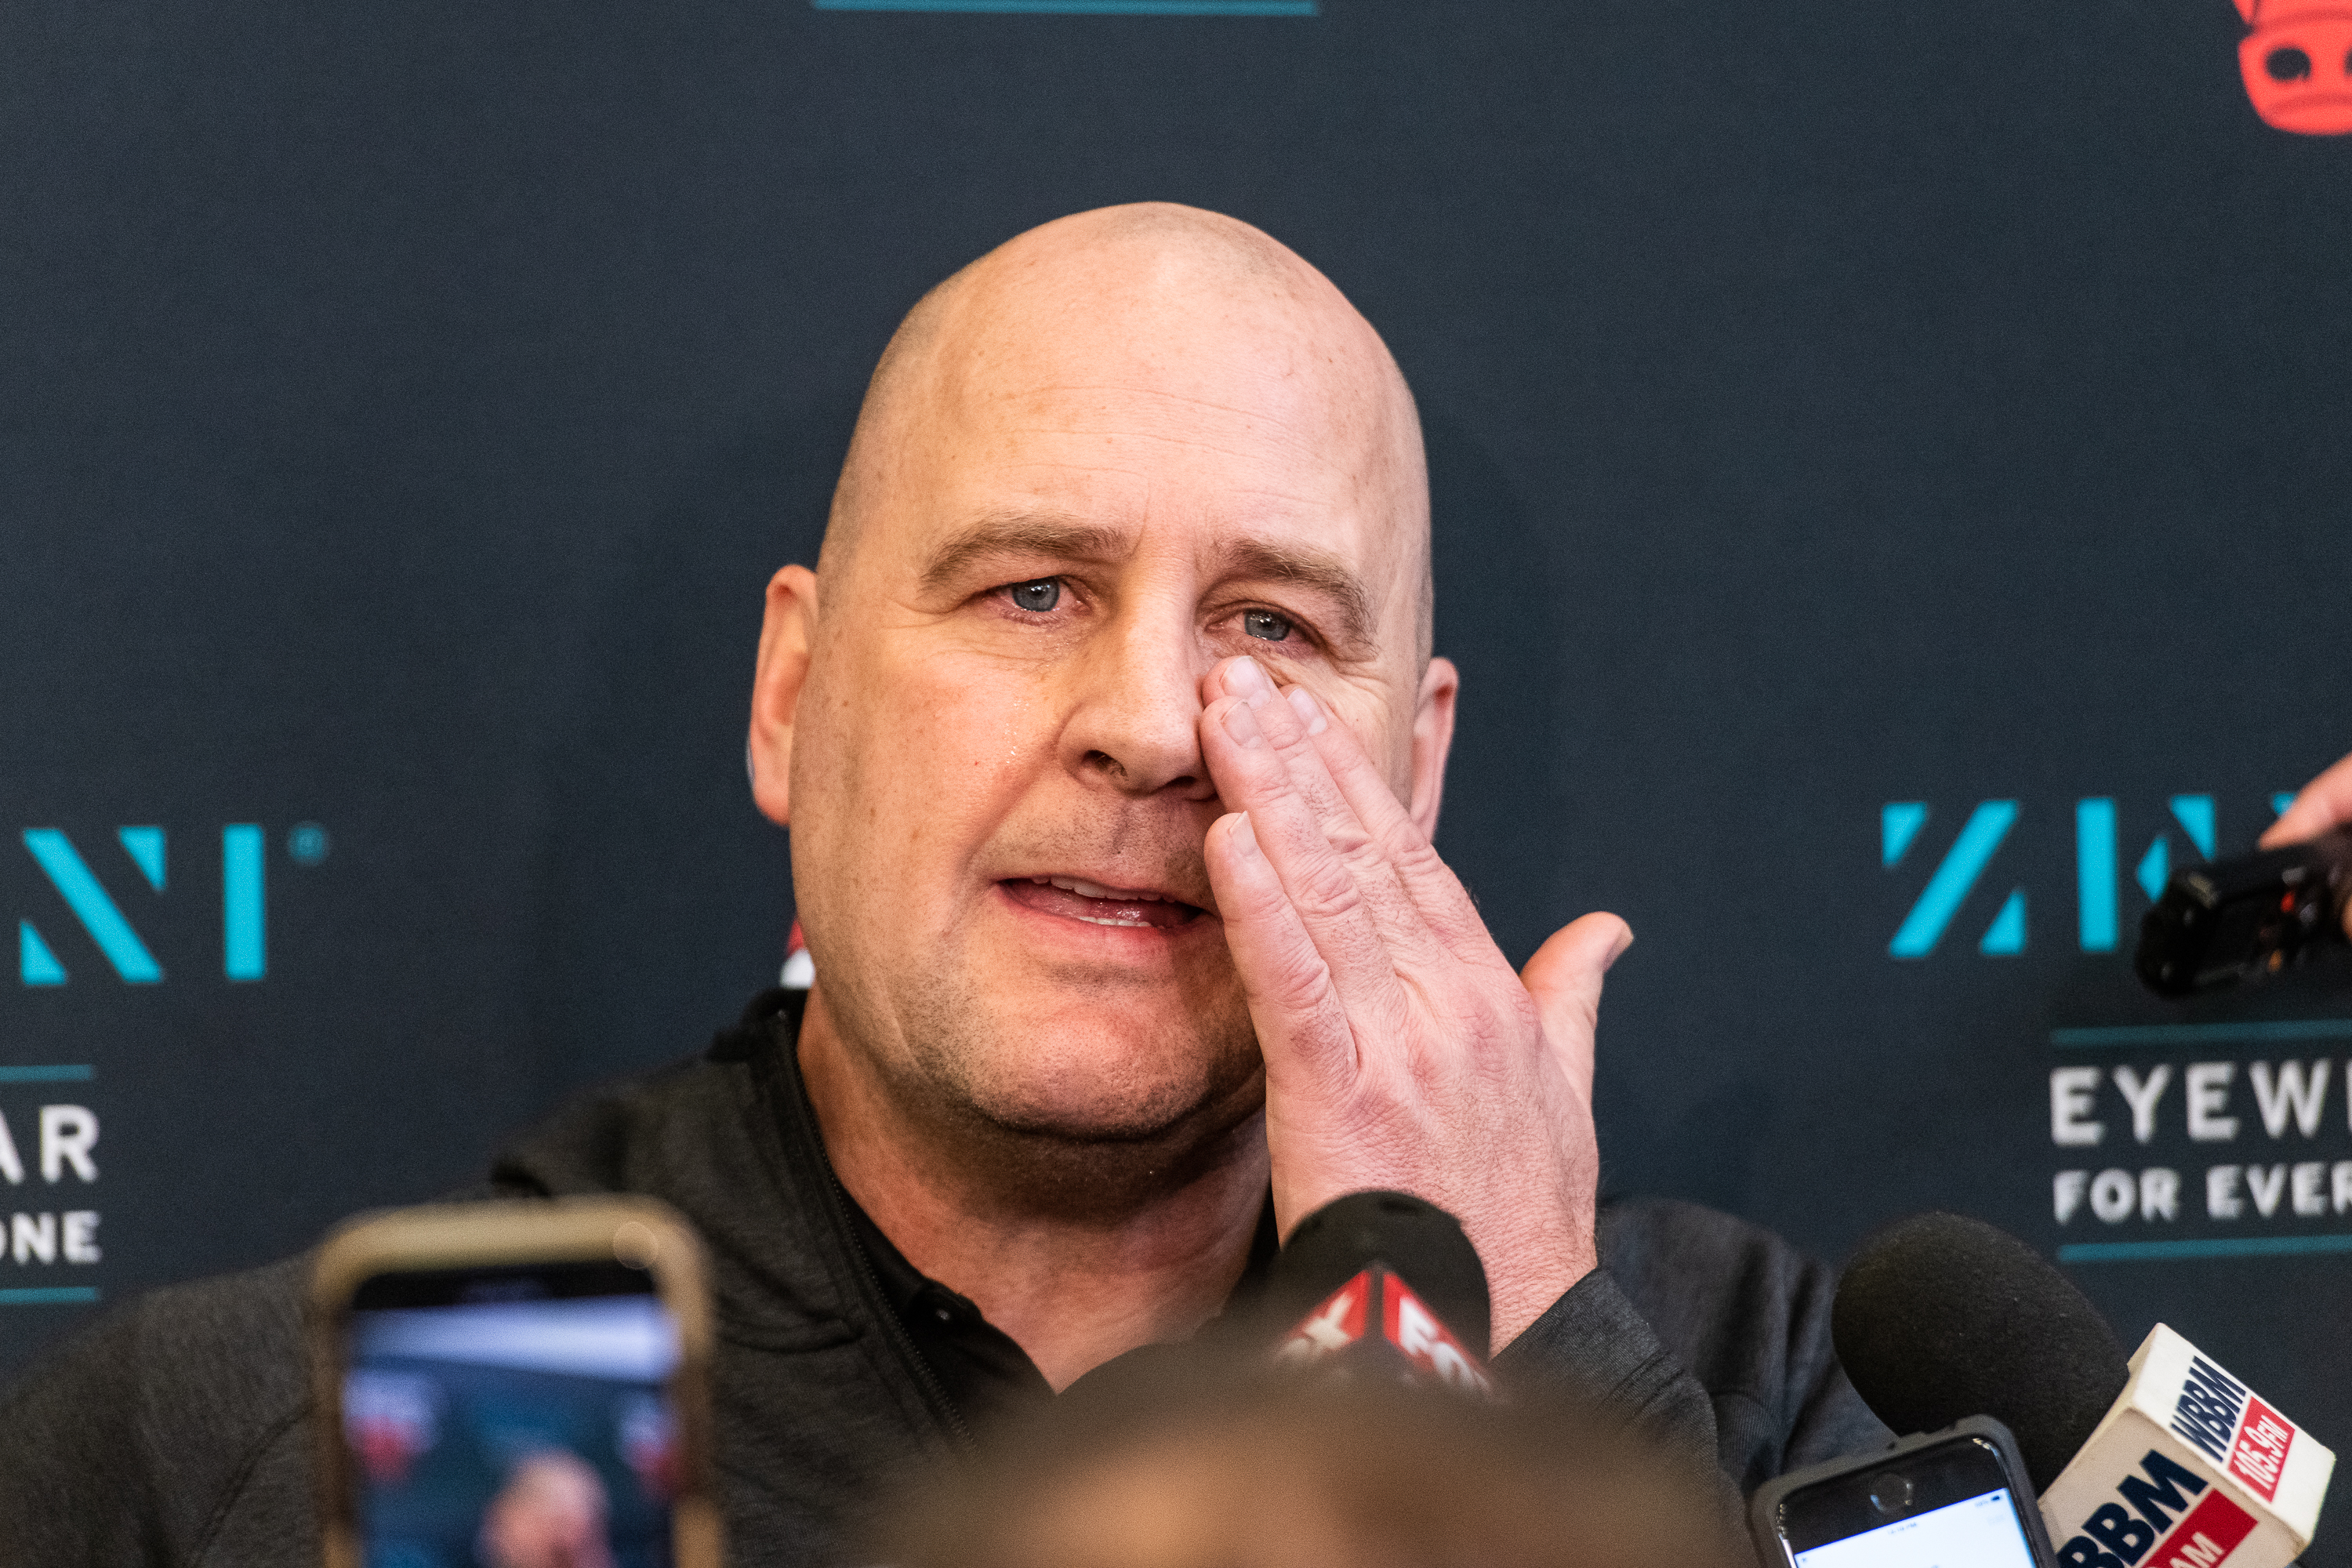 Bulls coach Jim Boylen breaks down while giving his reaction to the death of Kobe Bryant and his daughter.